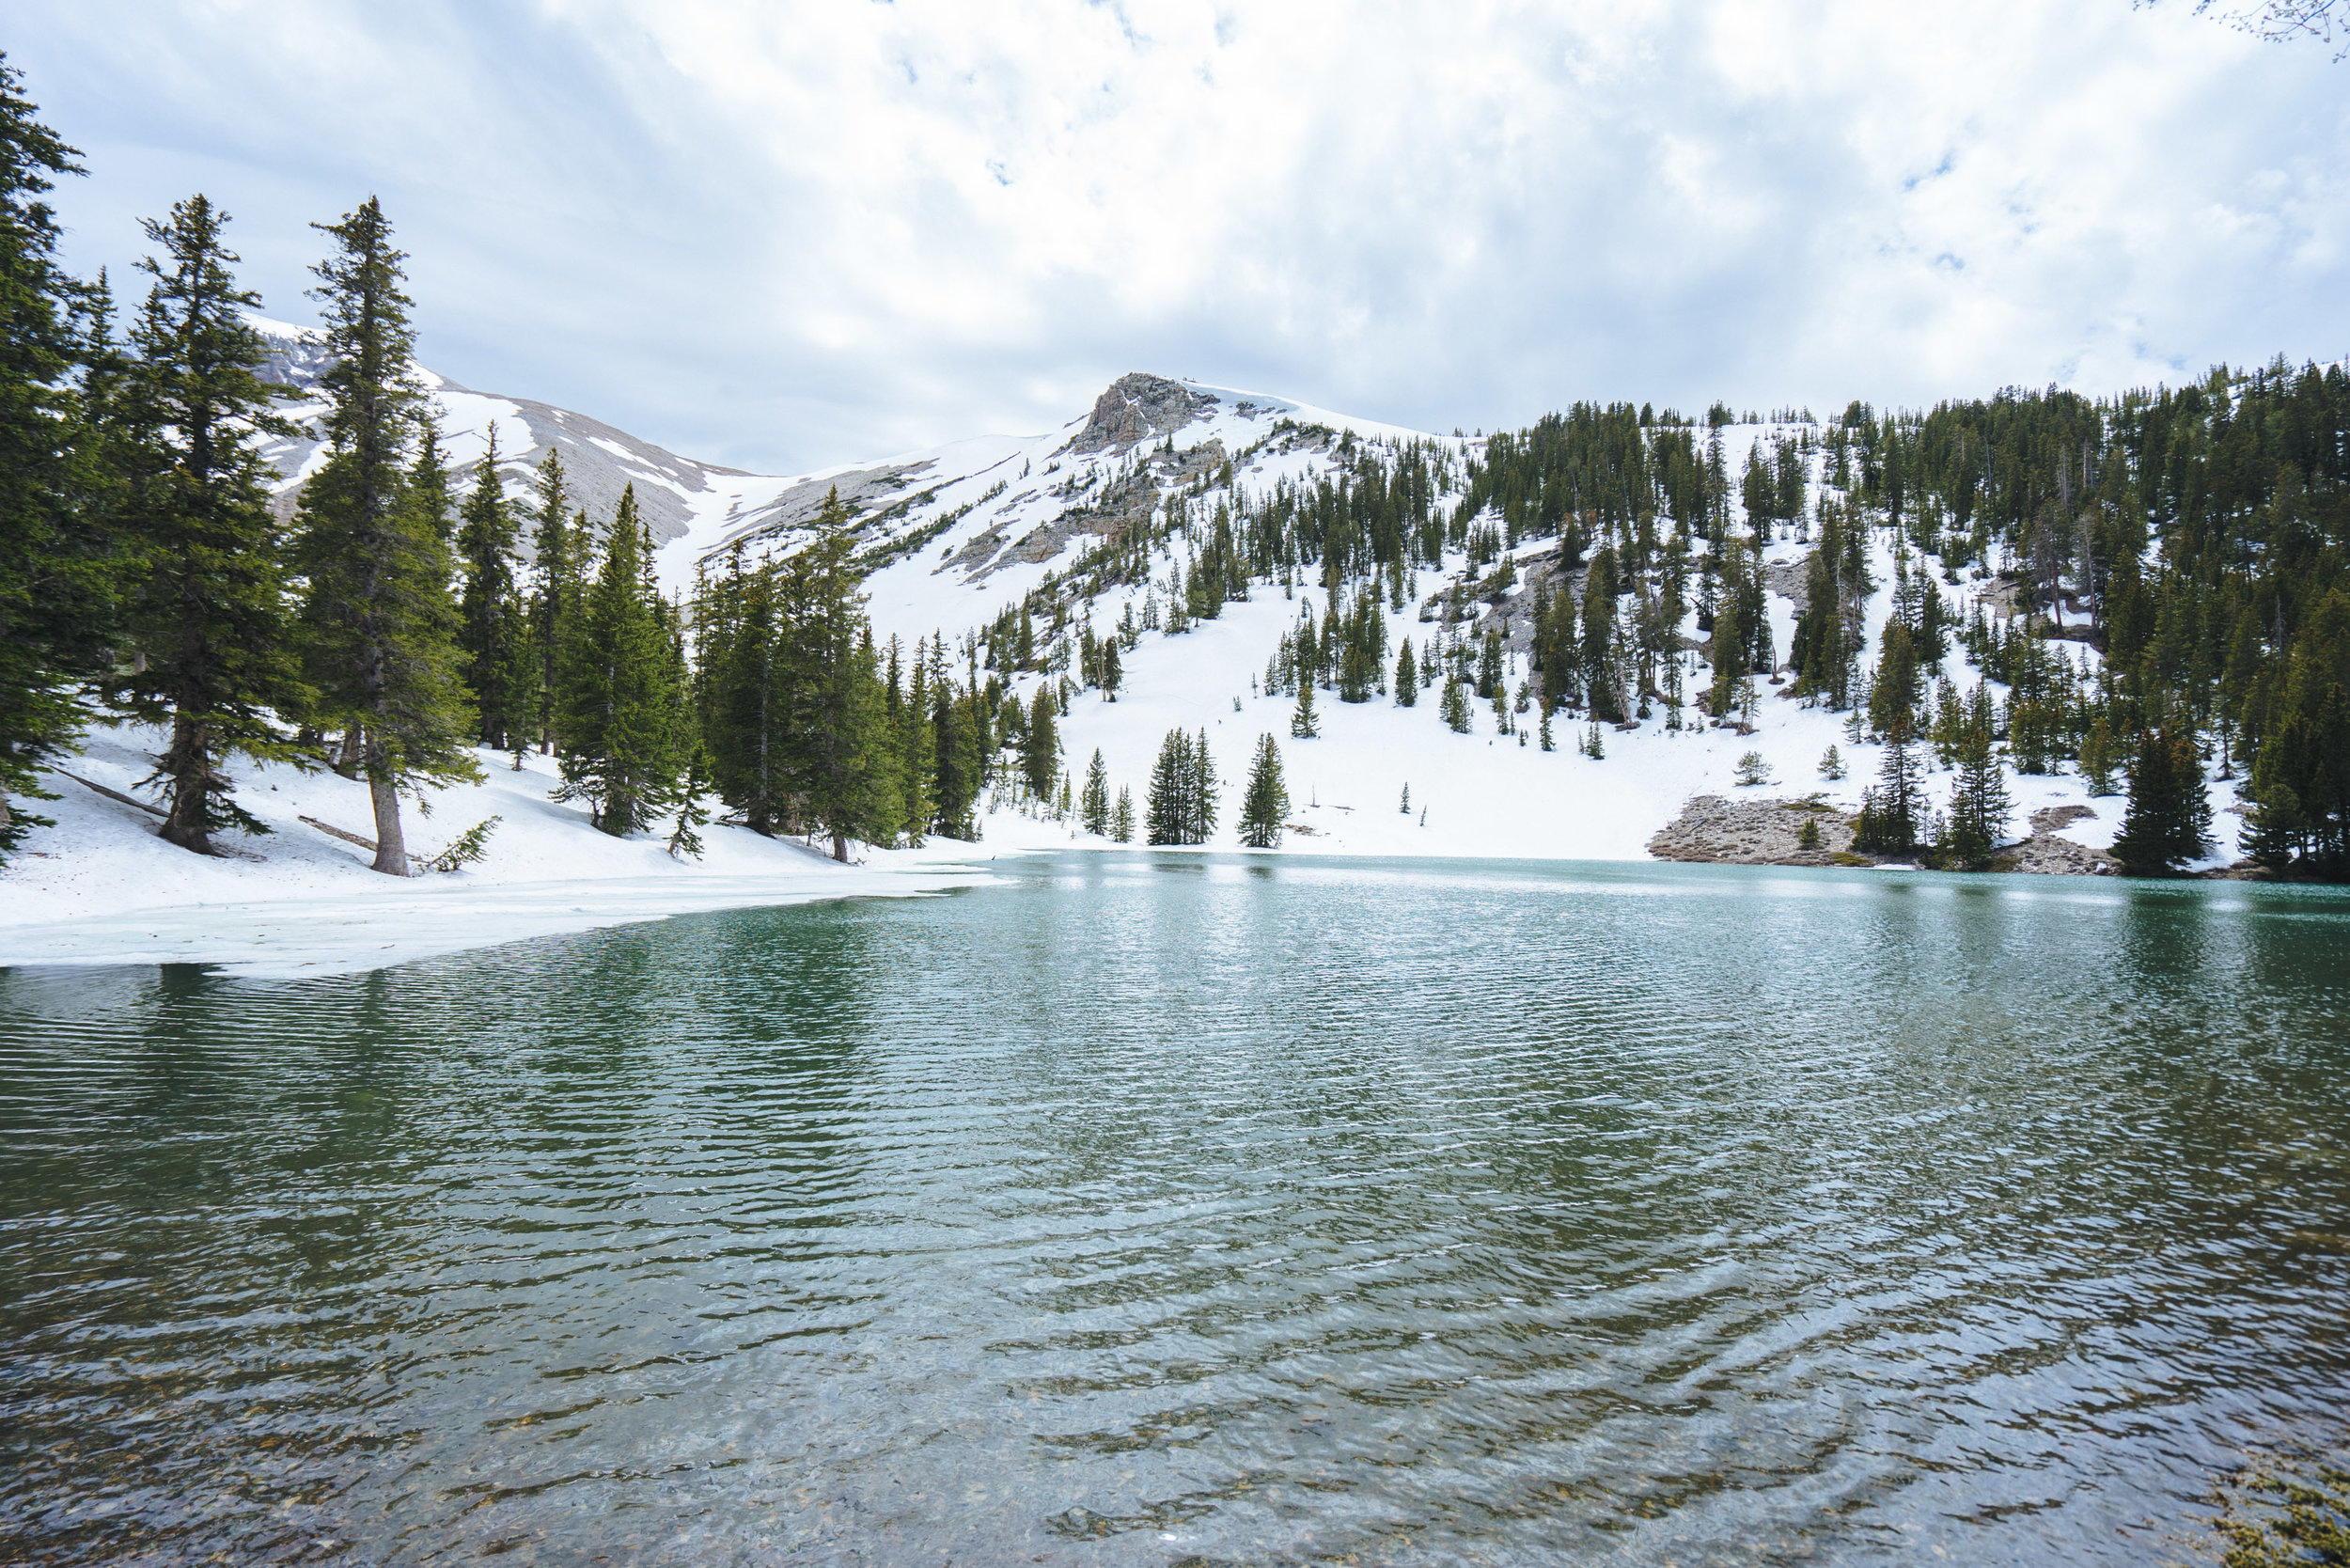 Great Basin NP, Nevada while on a training hike in the snow